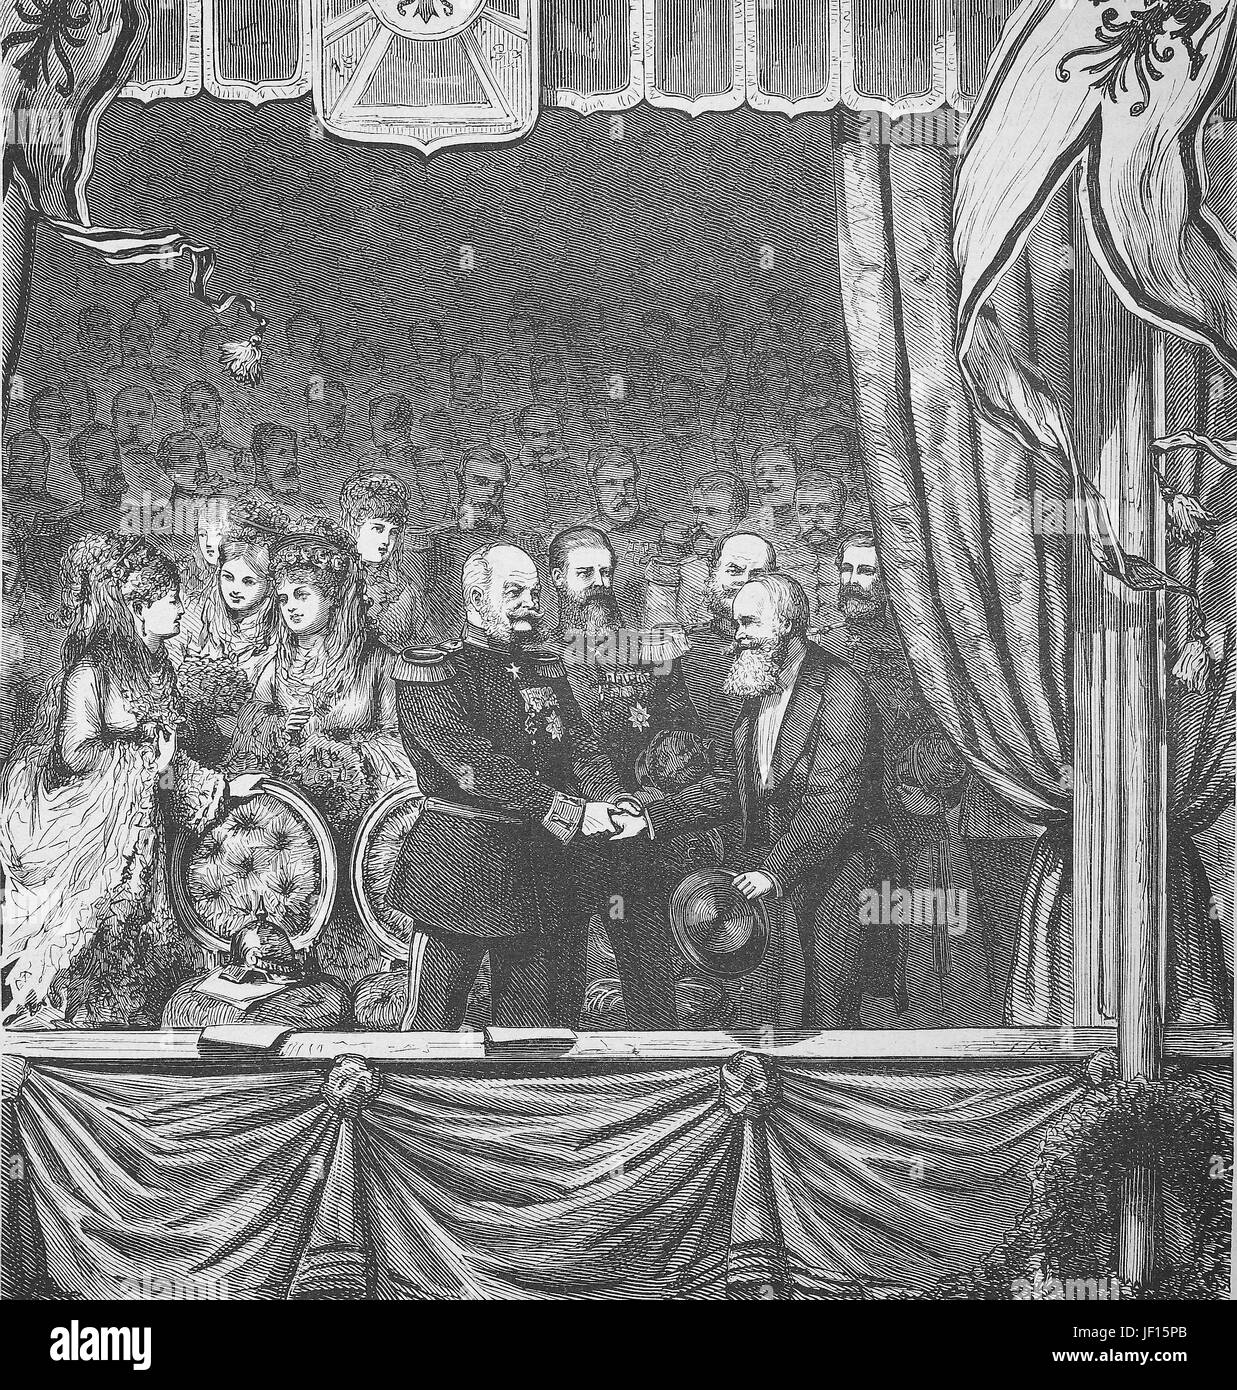 Historical illustration of the emporer, shaking hands with an artist, 1870, Digital improved reproduction from an - Stock Image